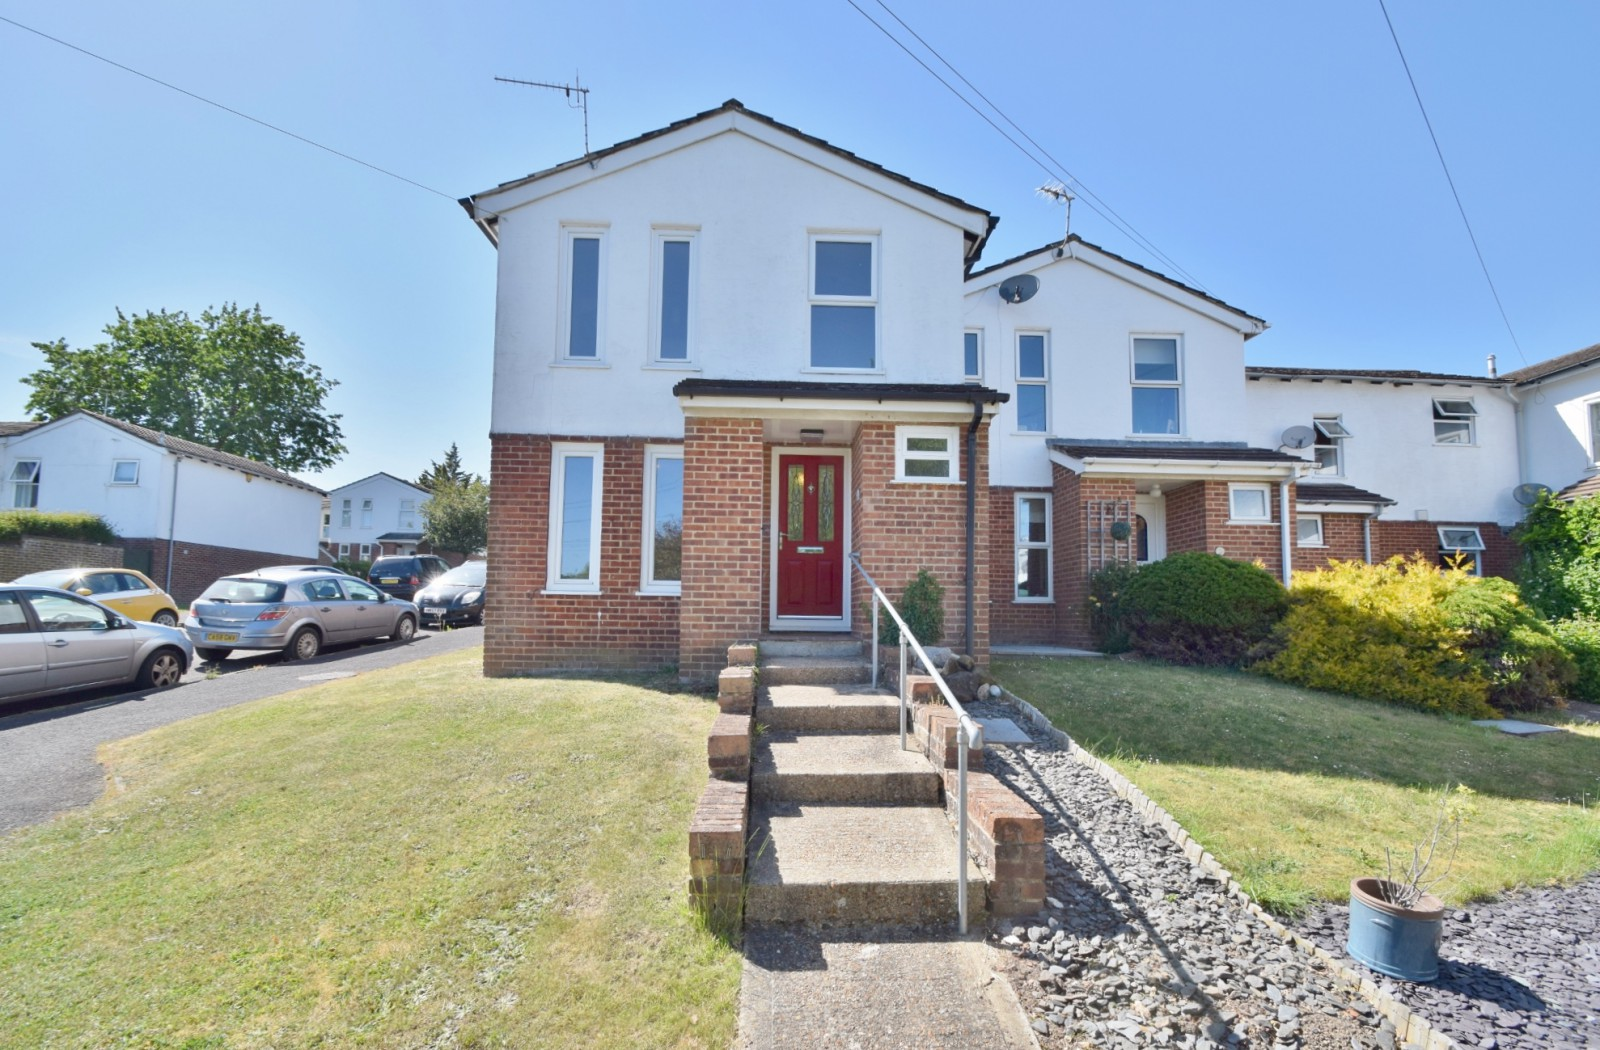 Vale Way, Kings Worthy, Winchester SO23 7LL